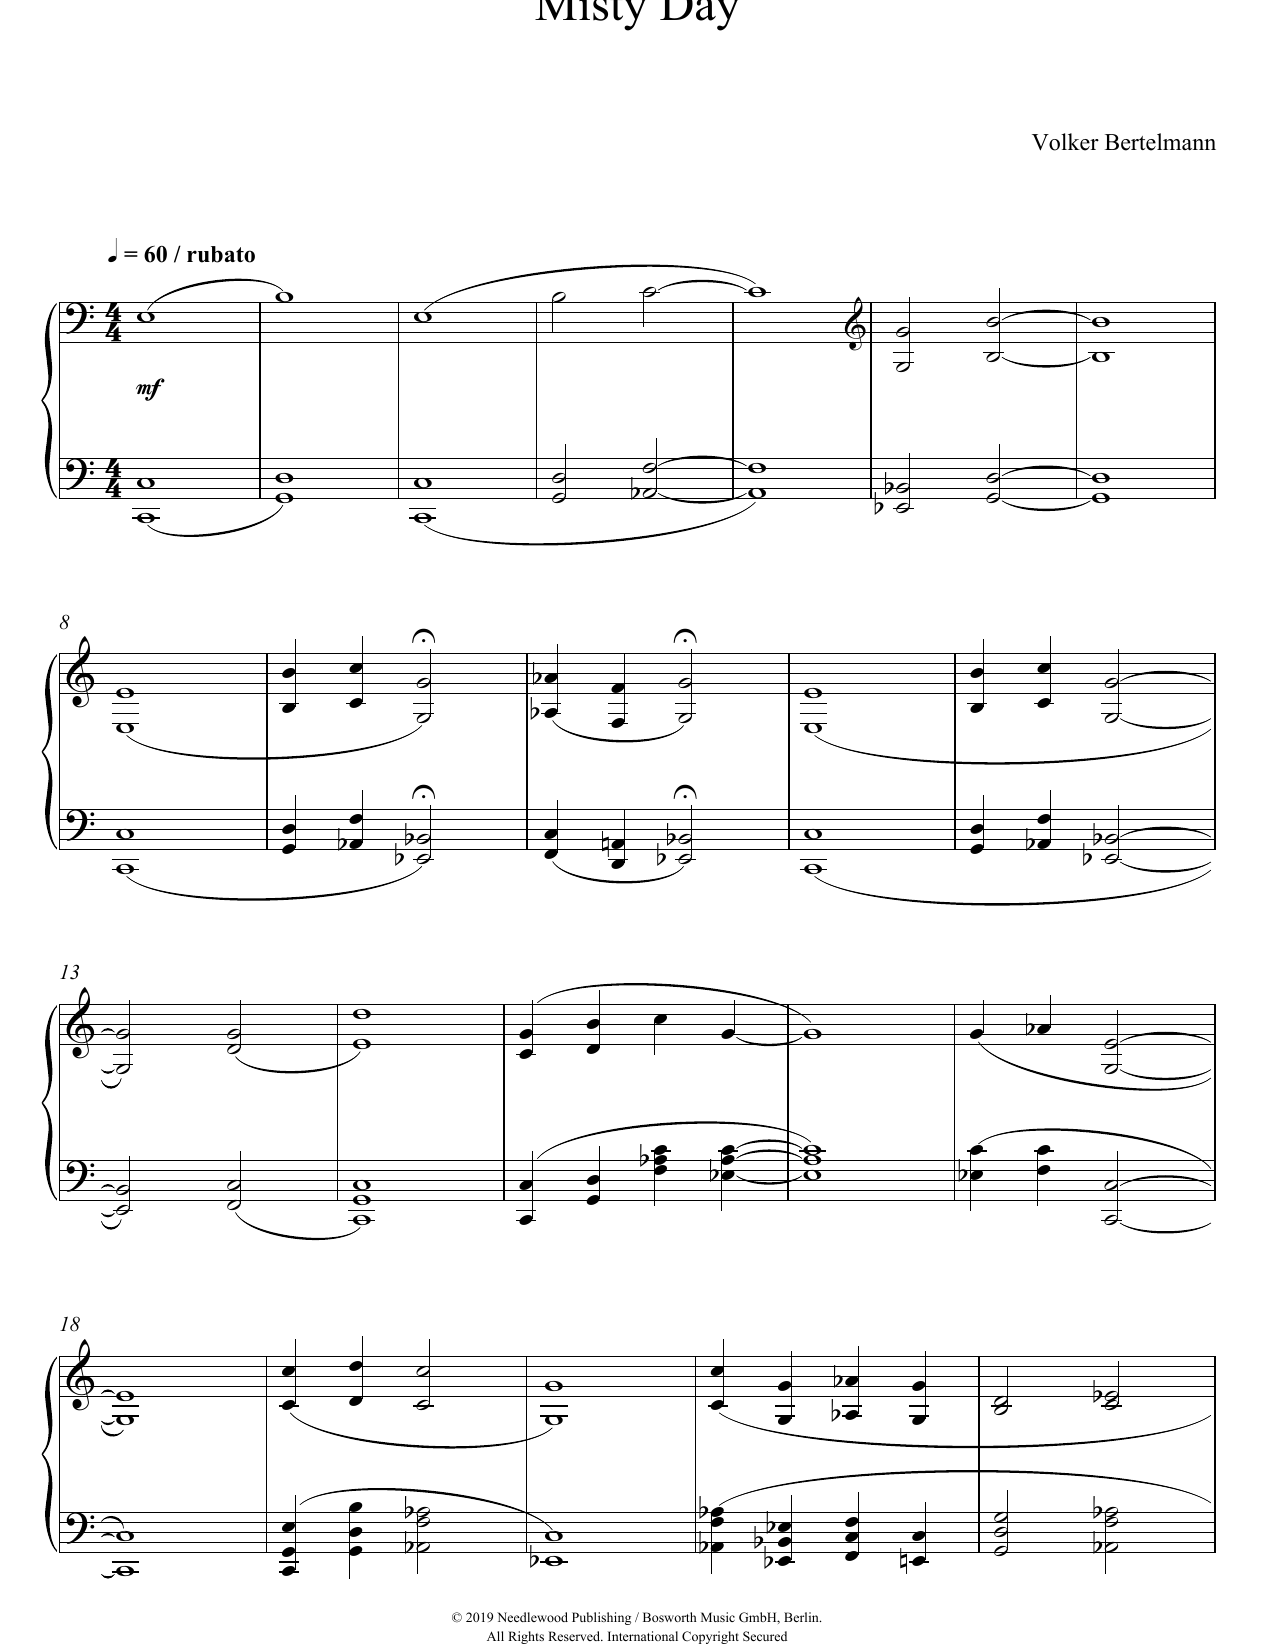 Hauschka Misty Day sheet music notes and chords. Download Printable PDF.